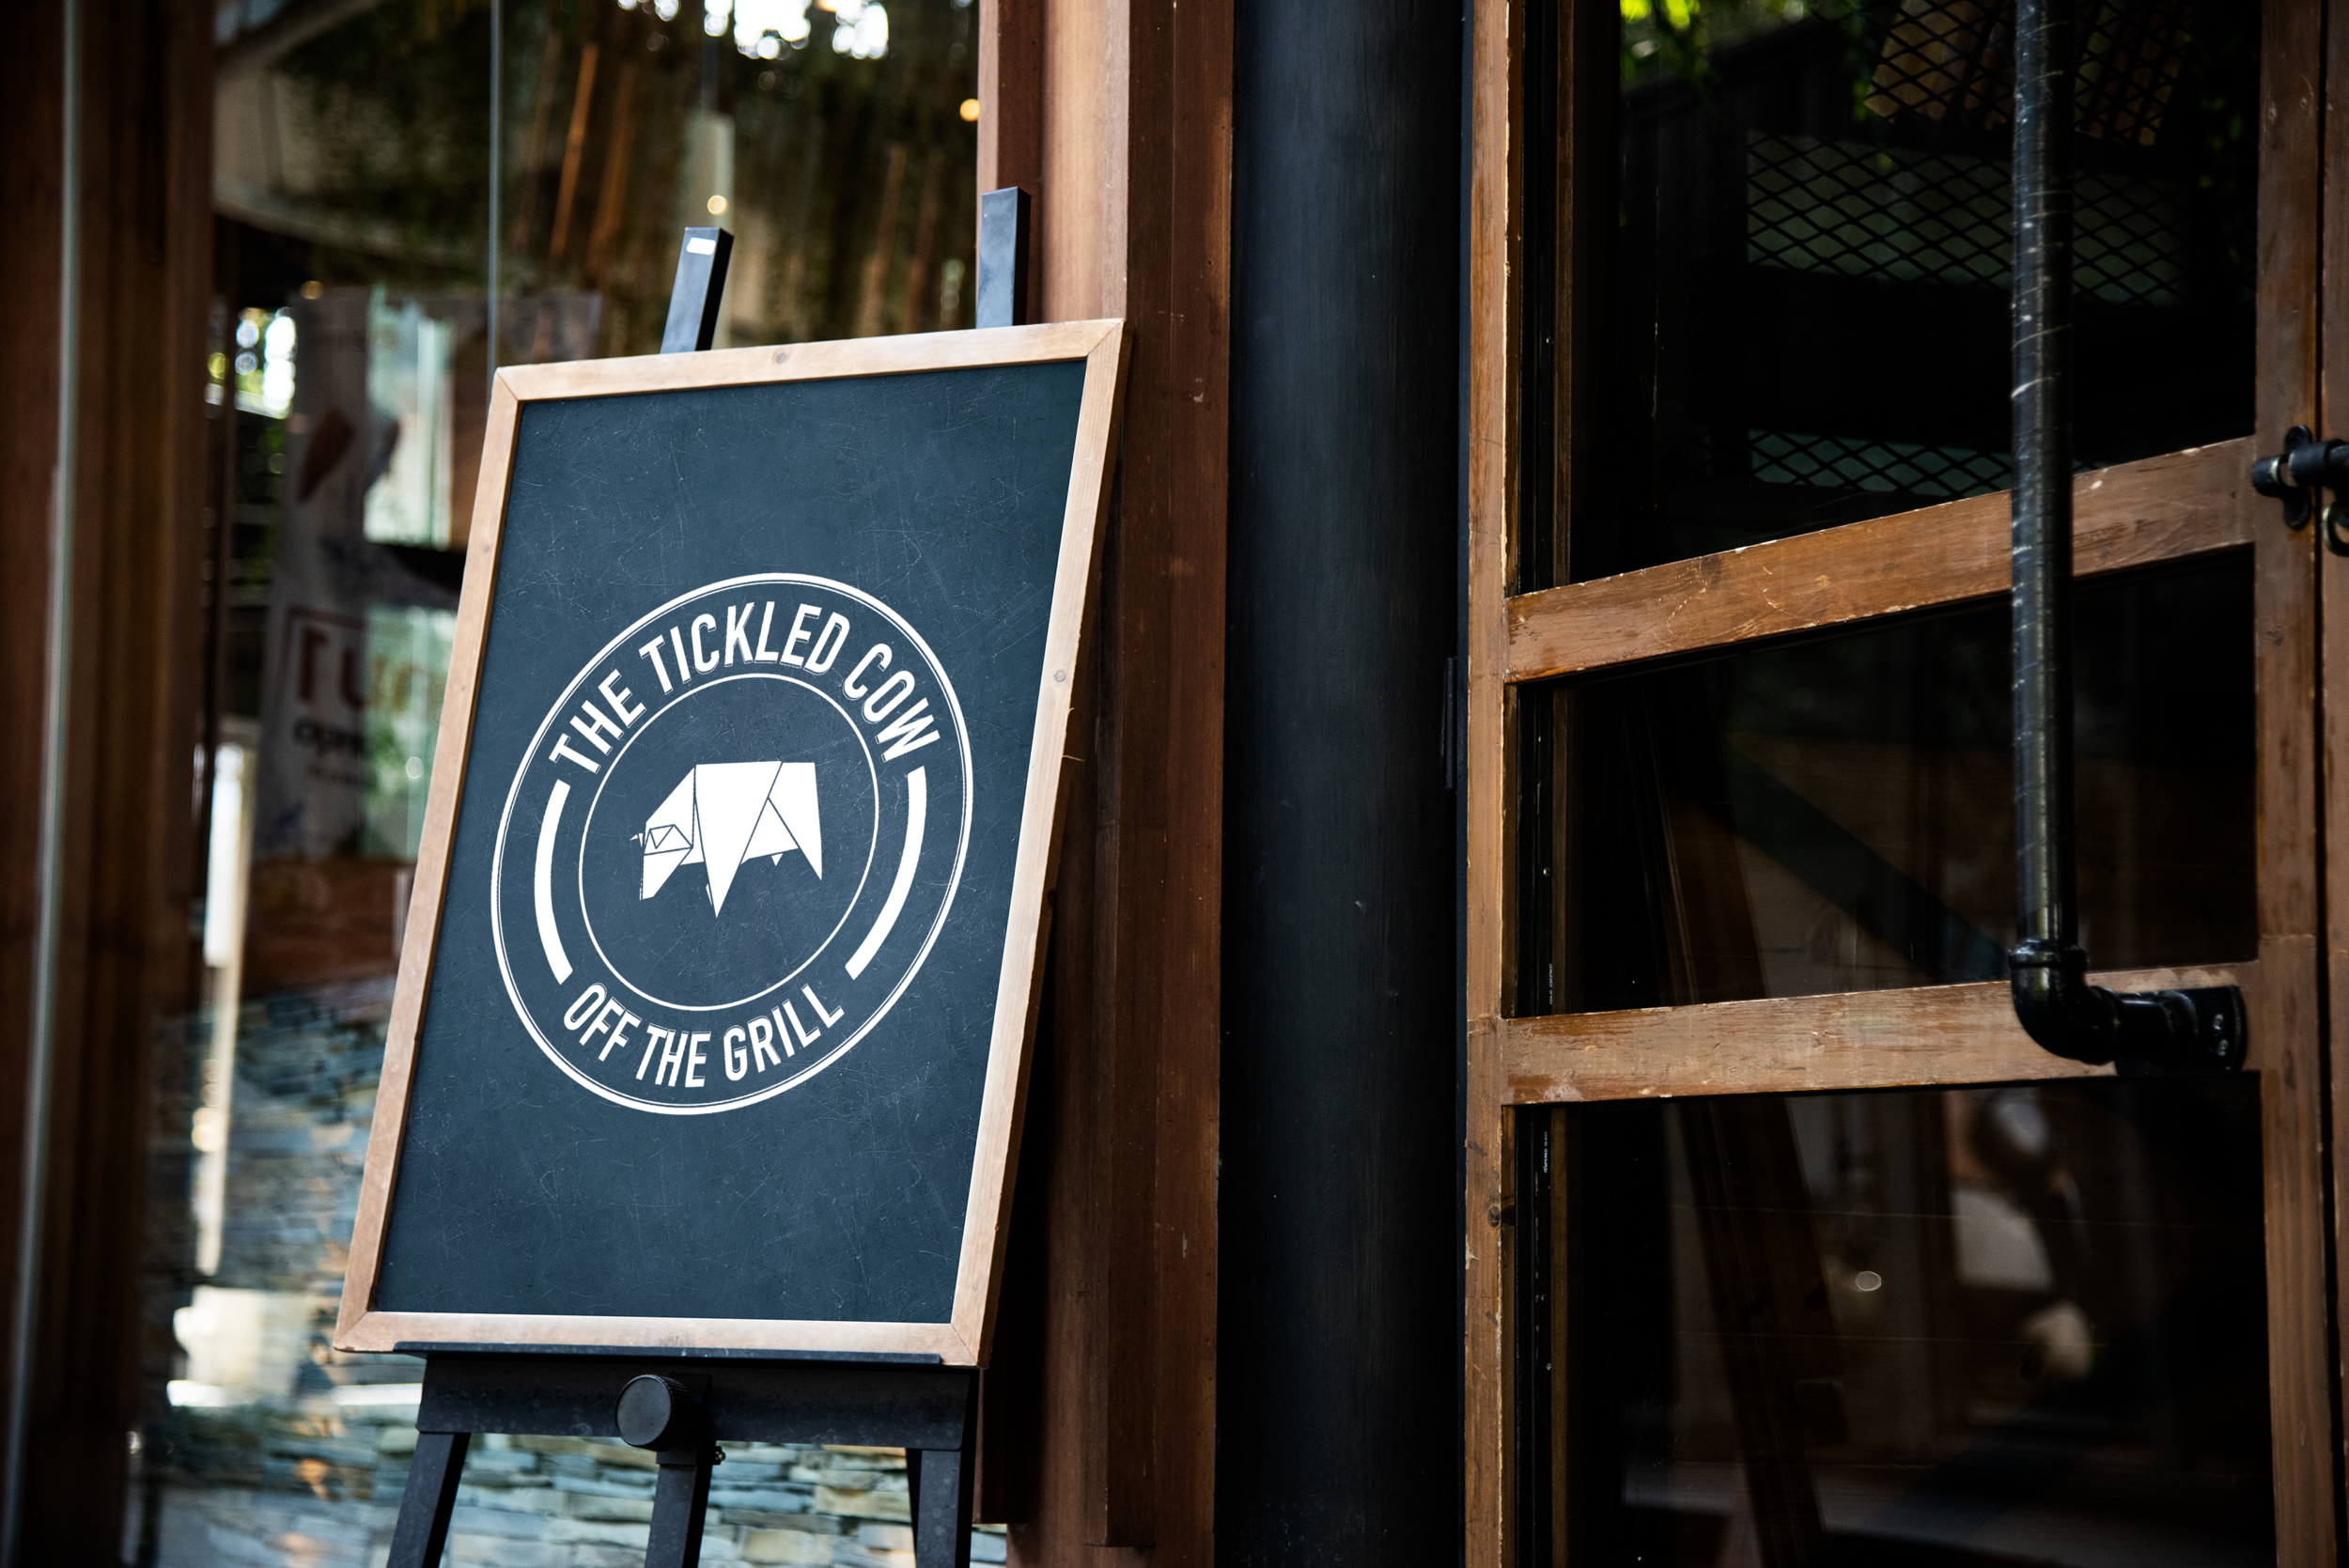 Tickled Cow - CHS Creative Agency brief to create and design a logo and menu for a chain of new bistro gastro pubs.